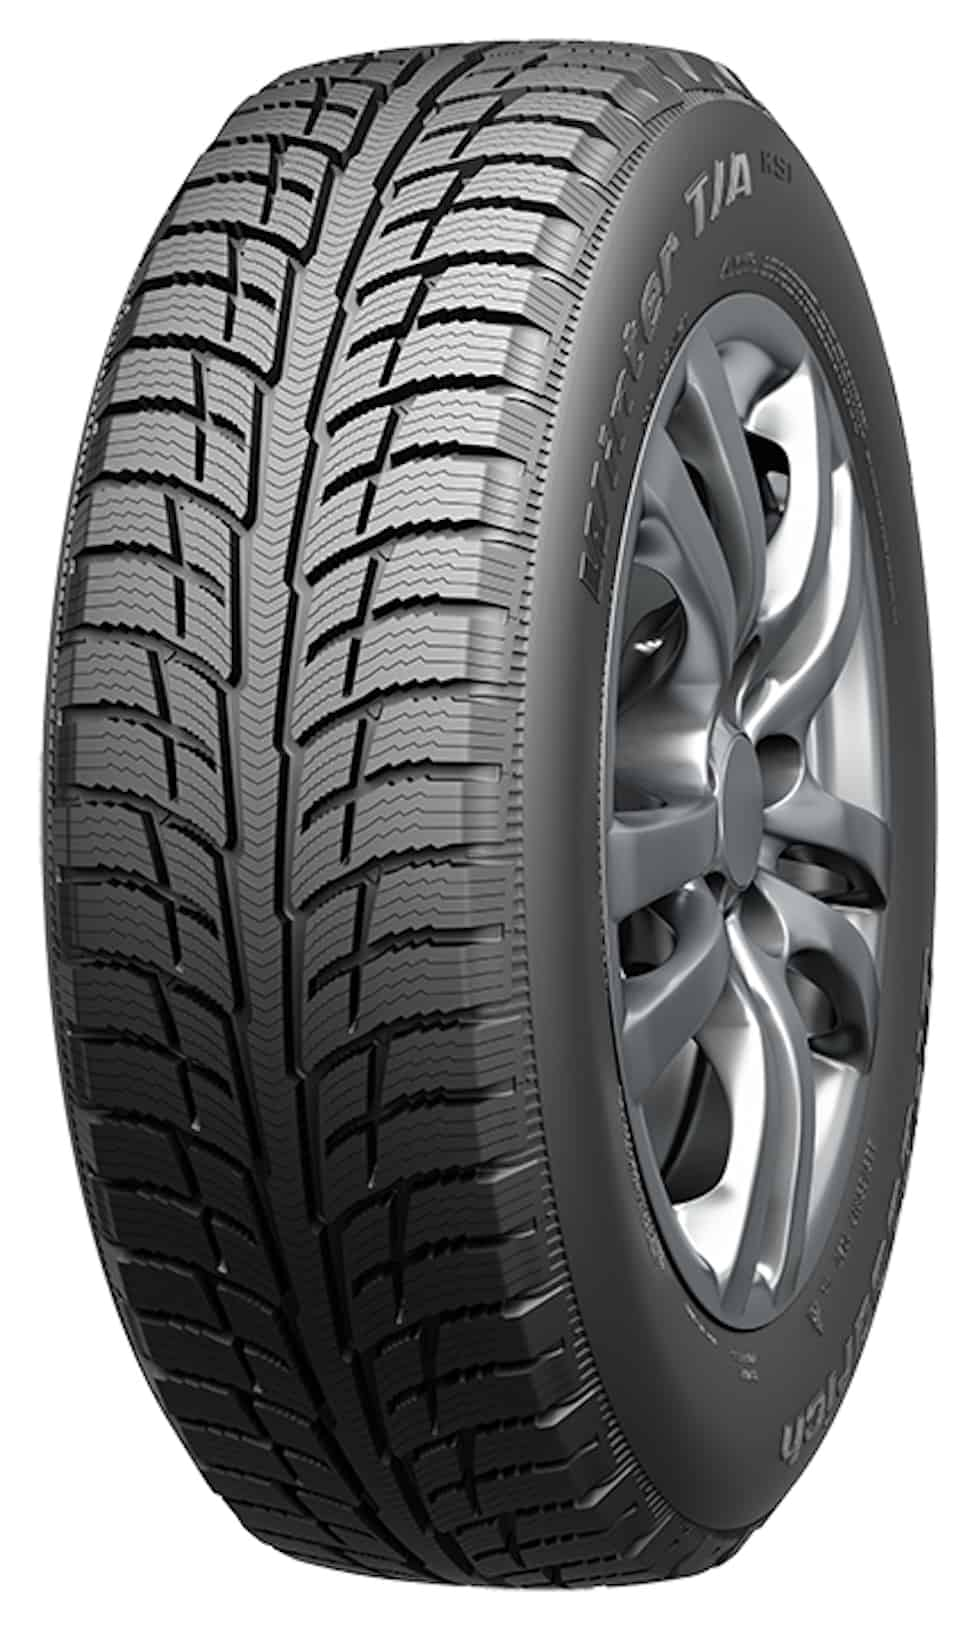 Tire Sizes Explained >> Review: New BFGoodrich Winter T/A KSI Tires